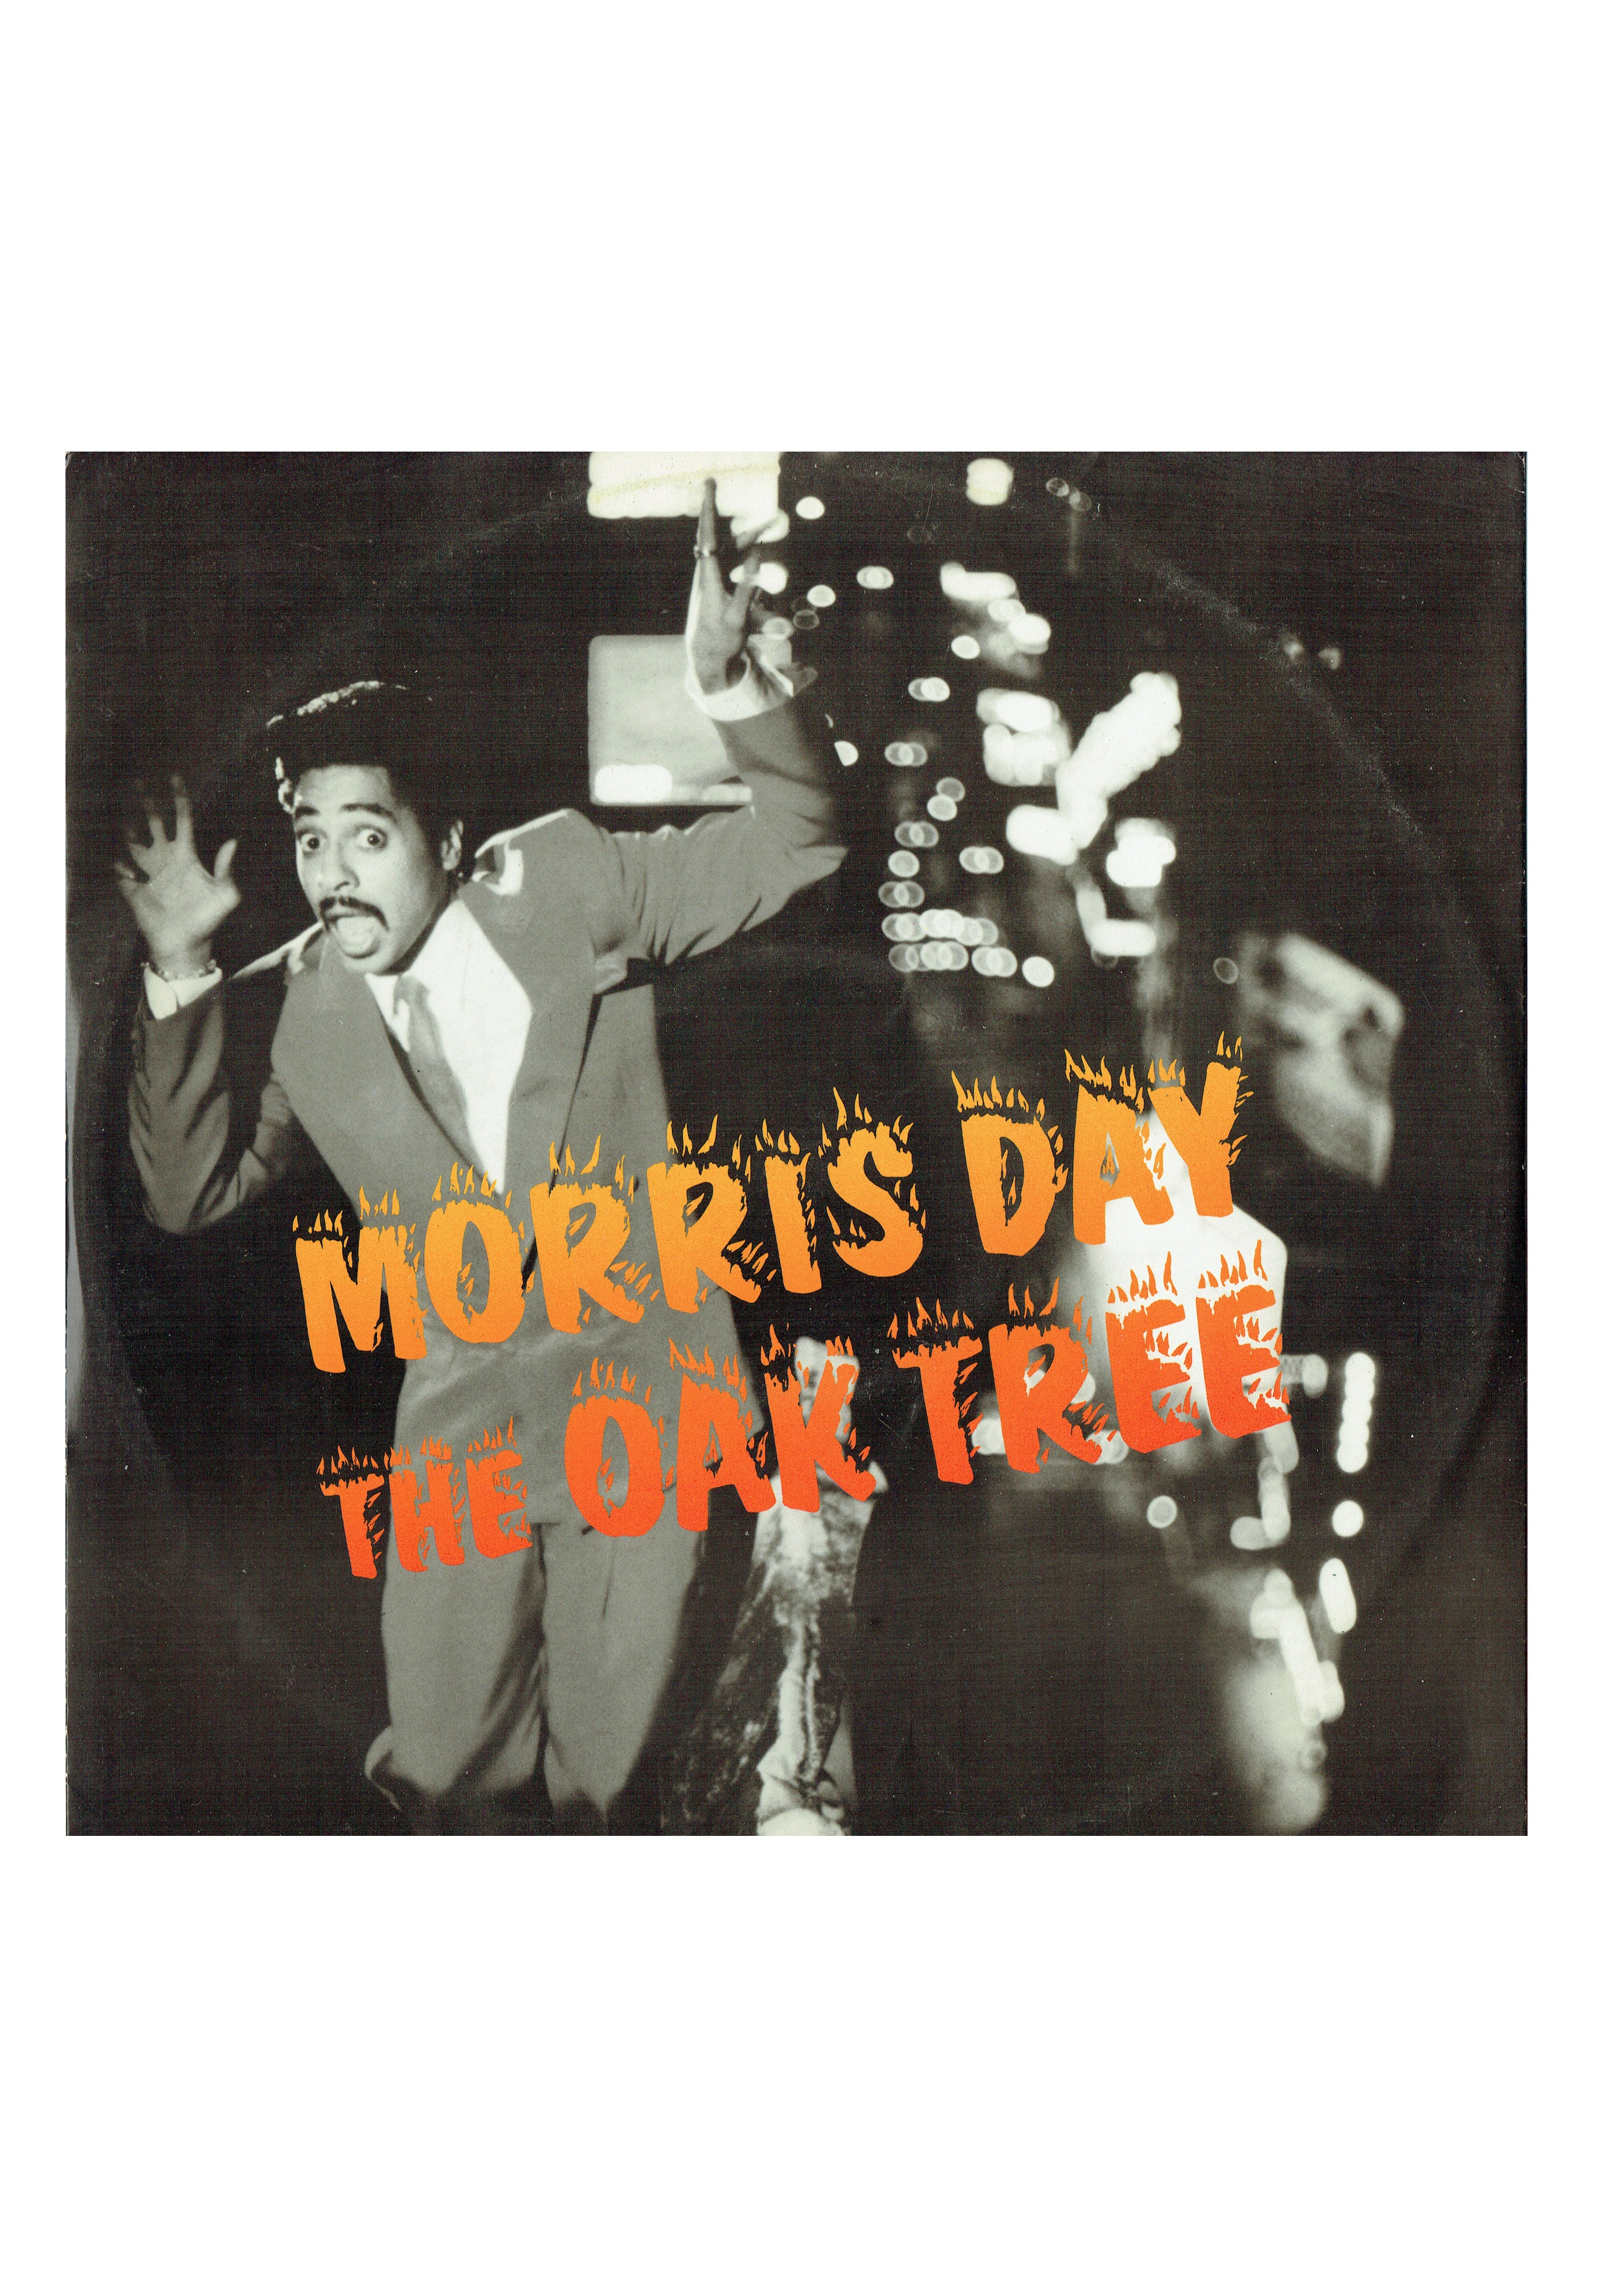 Morris Day The Oak Tree 12 Inch Vinyl UK 4 Tracks W8899T Prince sms